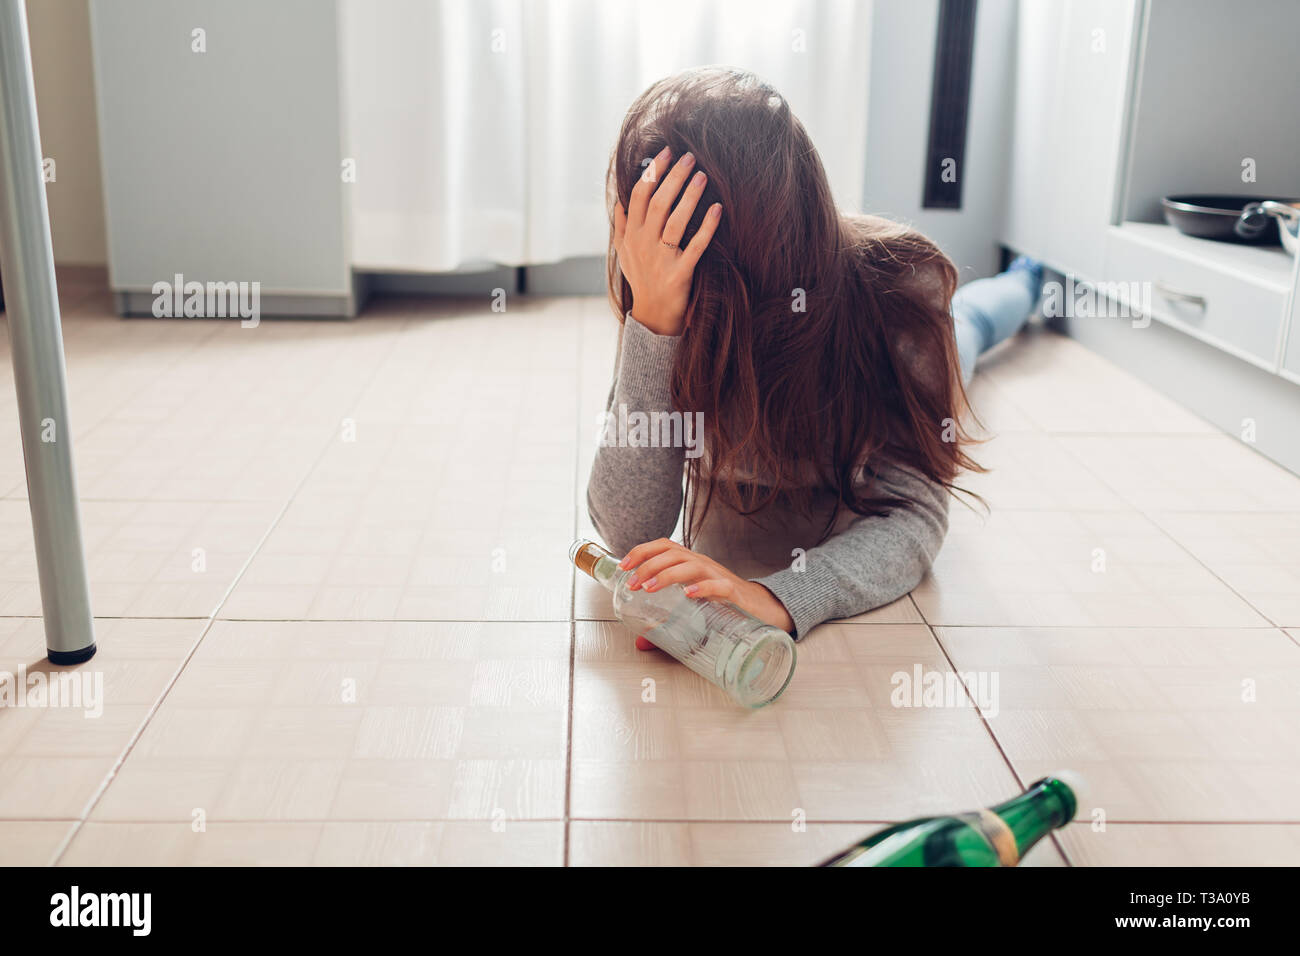 Female alcohol addiction. Young woman woke up on kitchen floor after party surrounded with wine bottles and having hangover - Stock Image